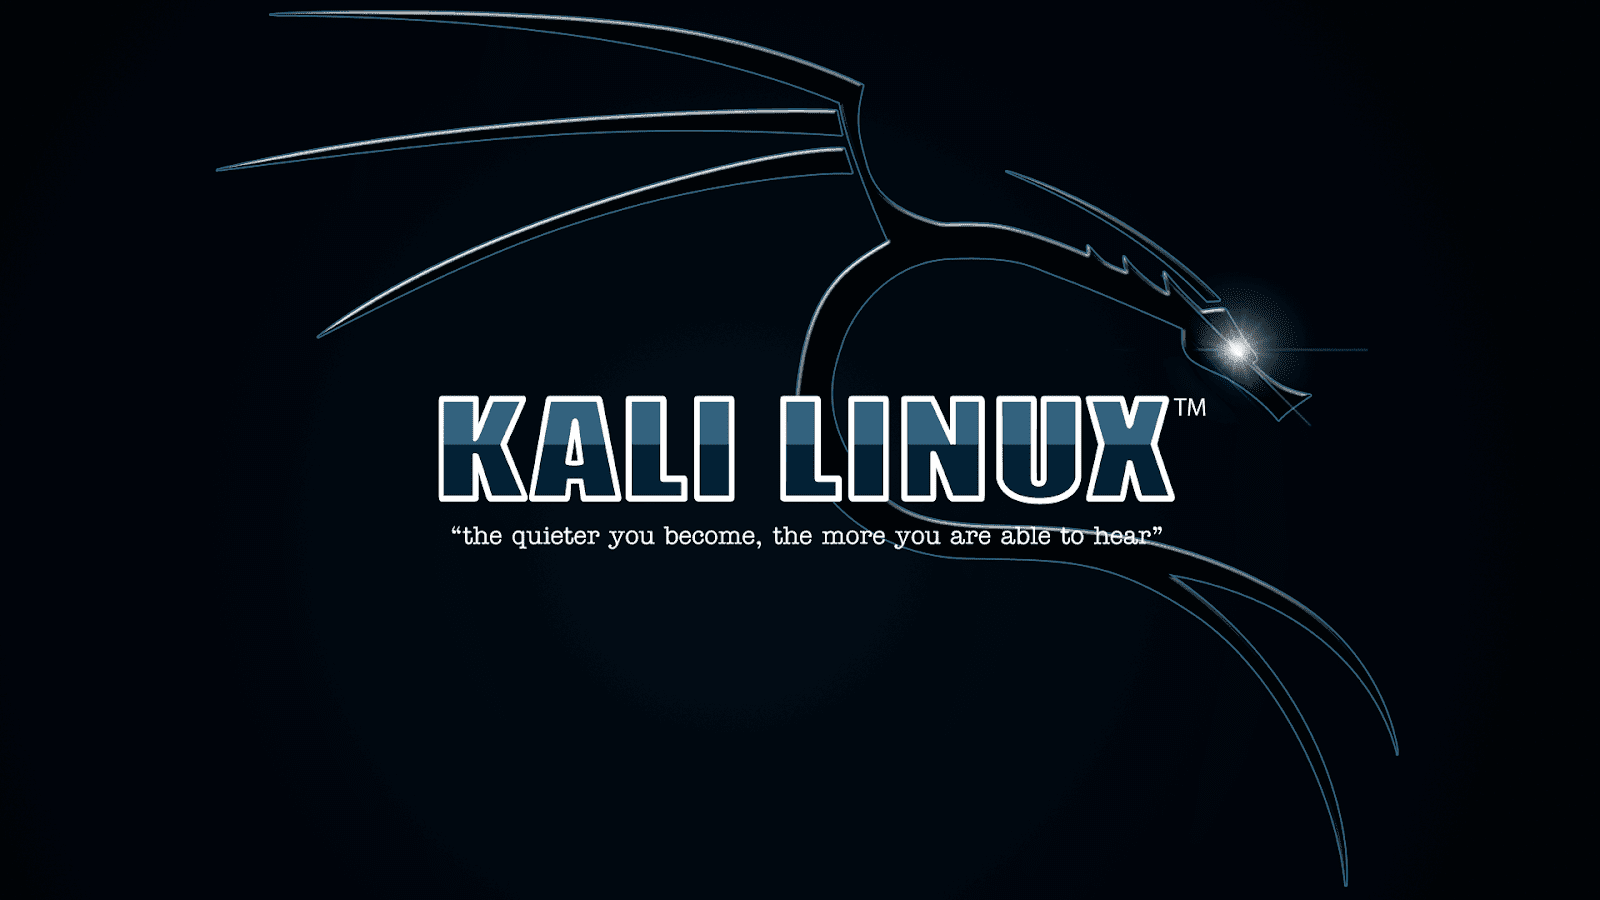 How to Install Kali Linux on Android Without root - Hacker